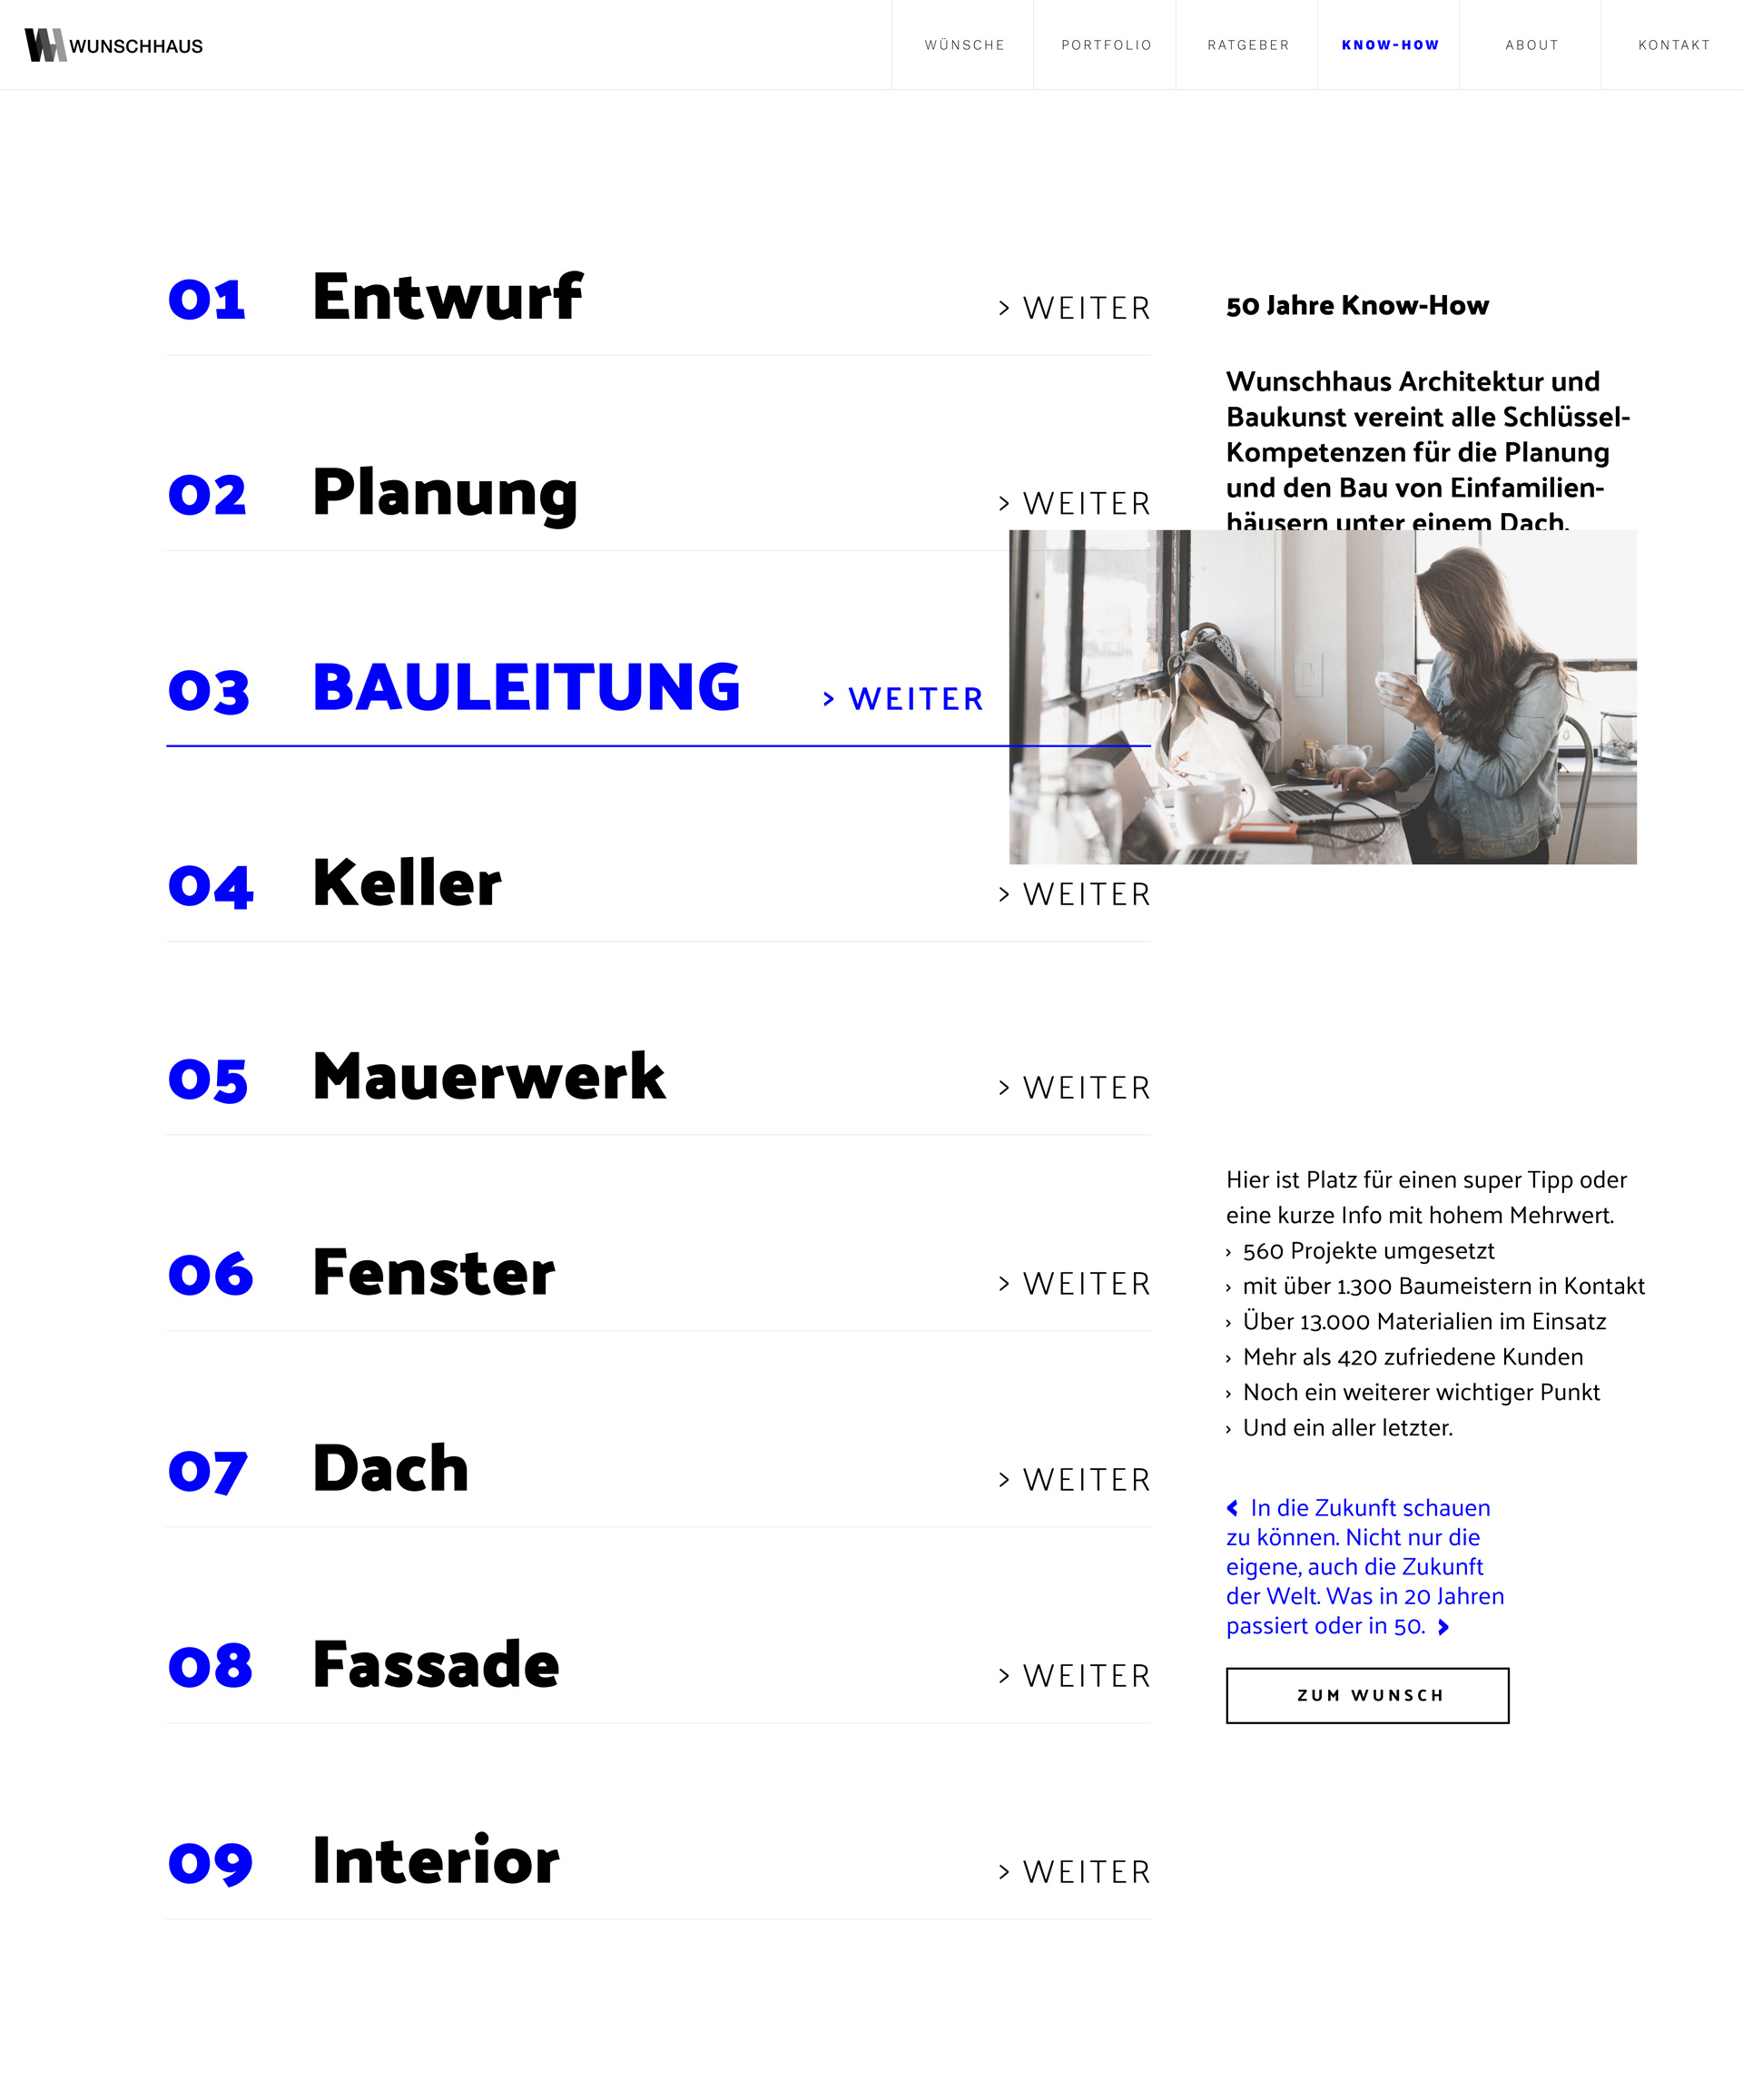 screenshot of wunschhaus's guide page